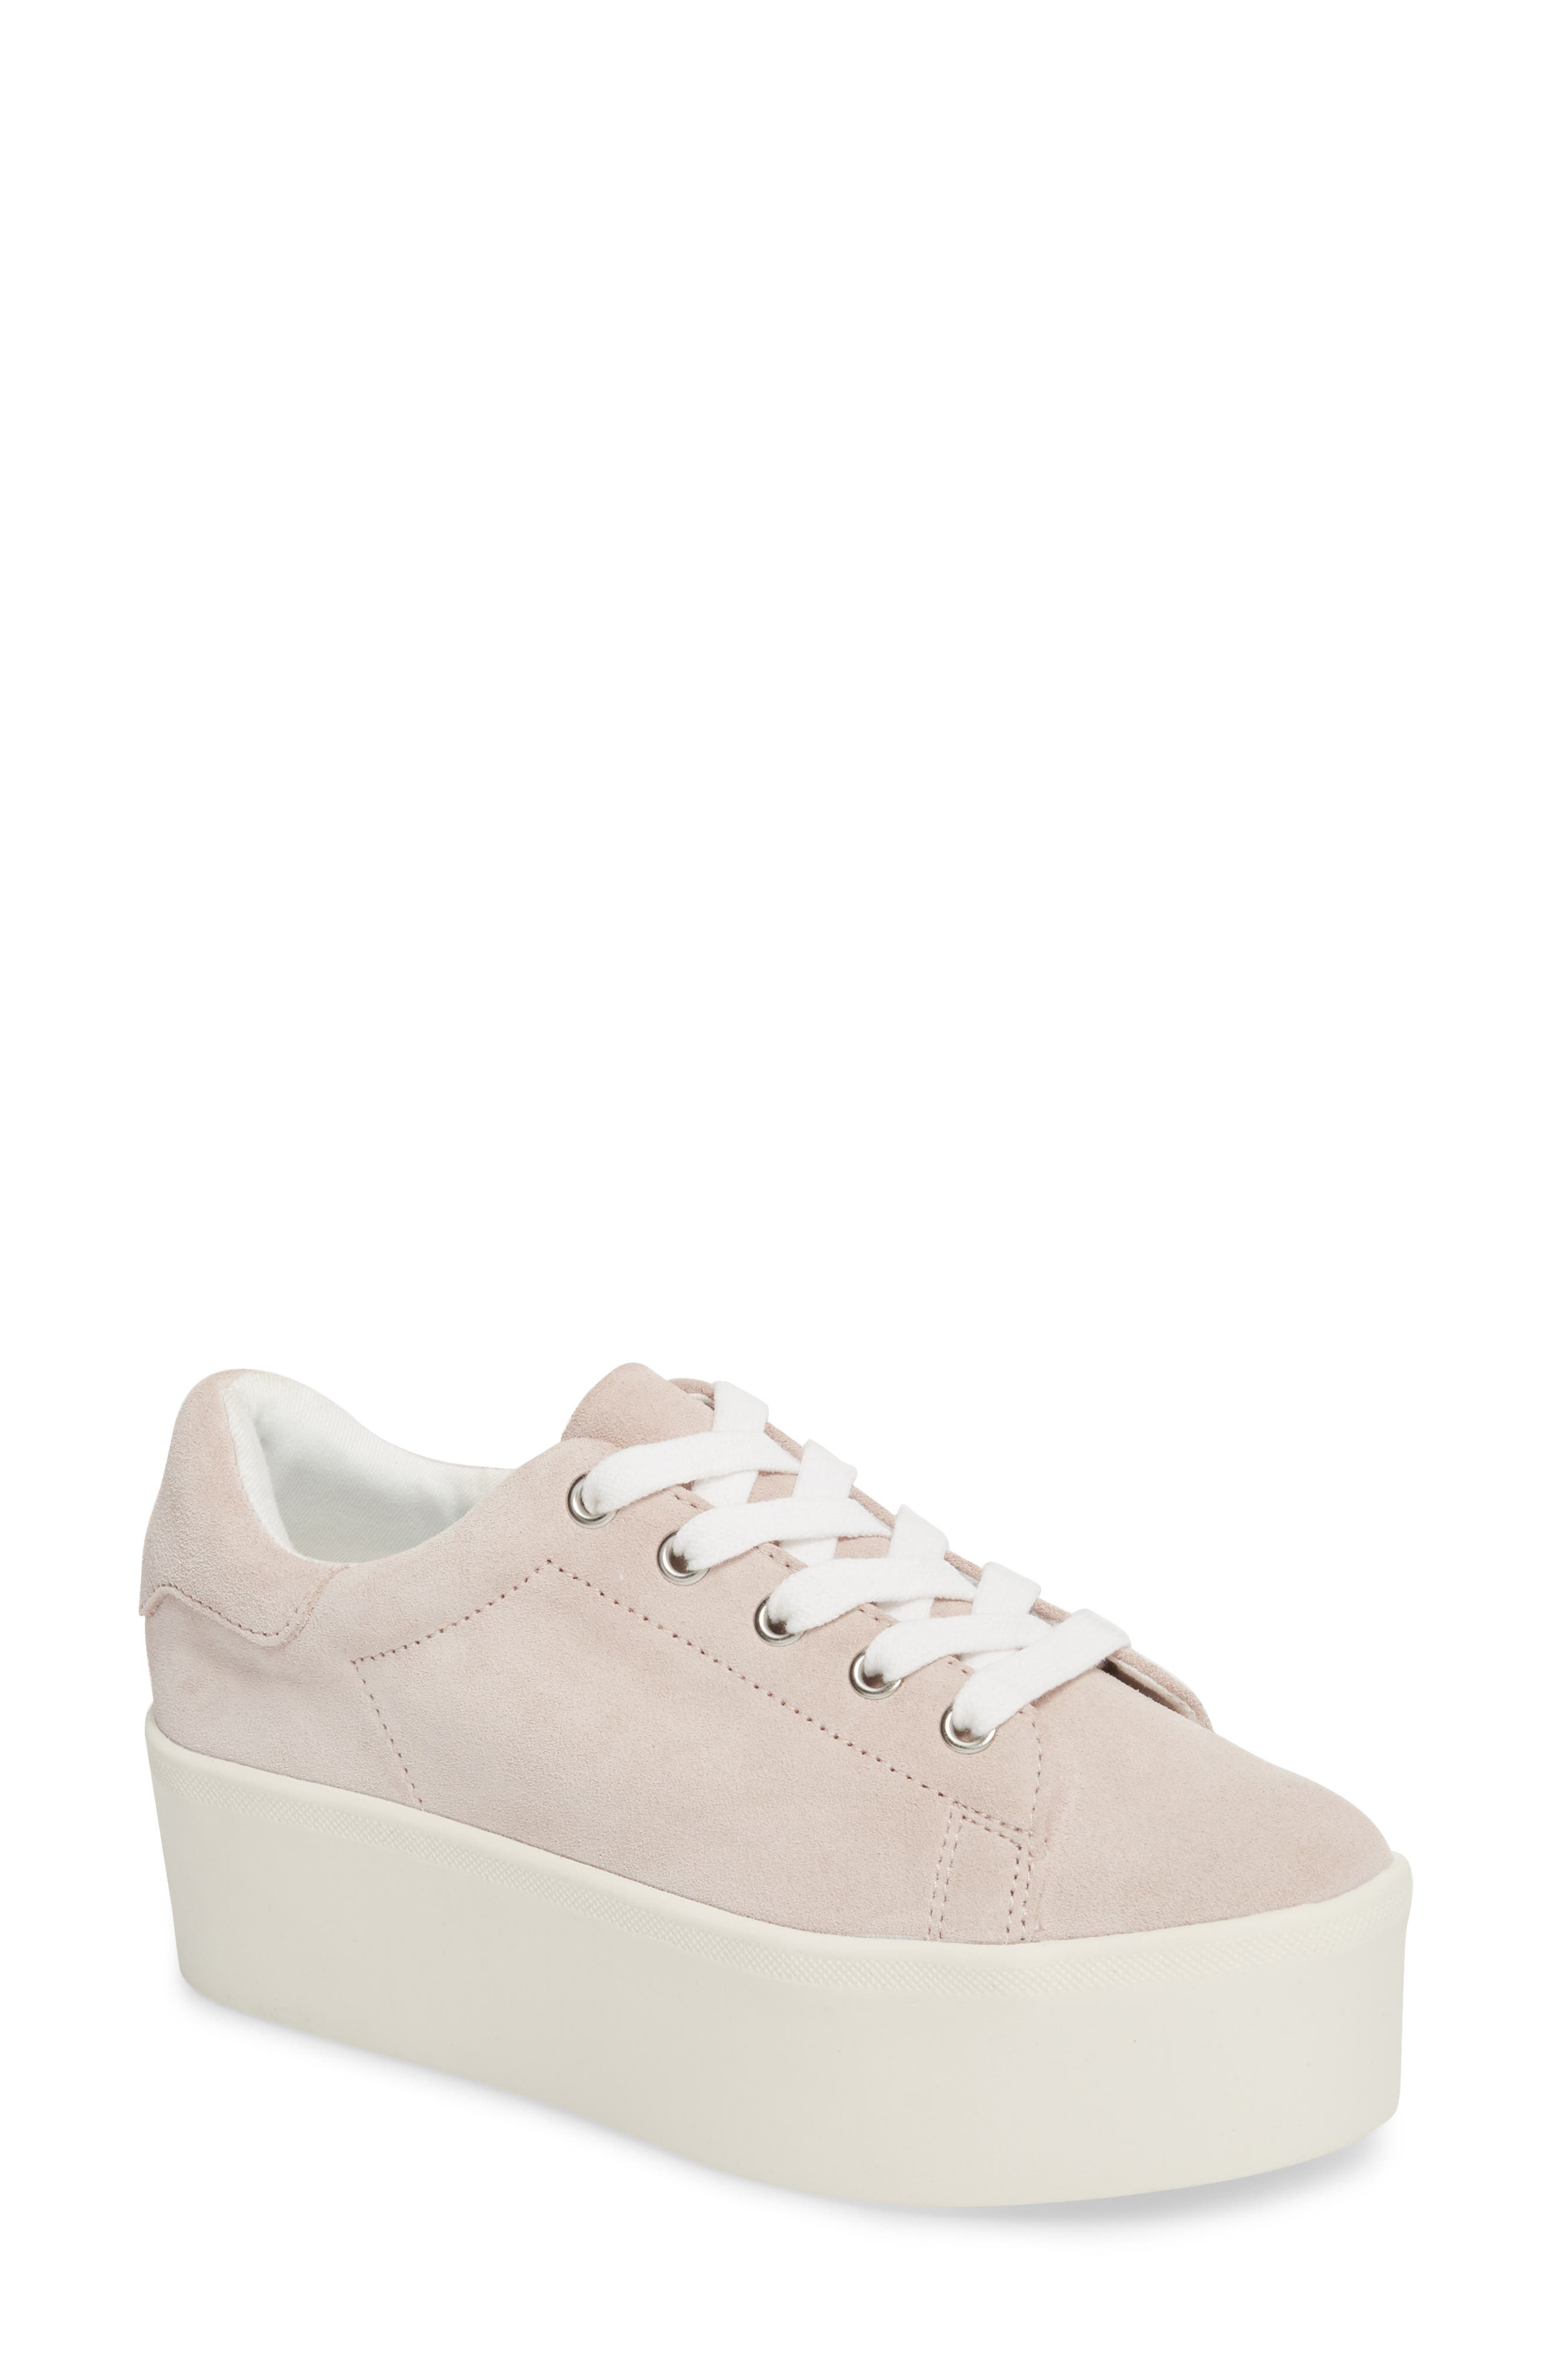 Palmer Sneaker,                         Main,                         color, Pink Suede